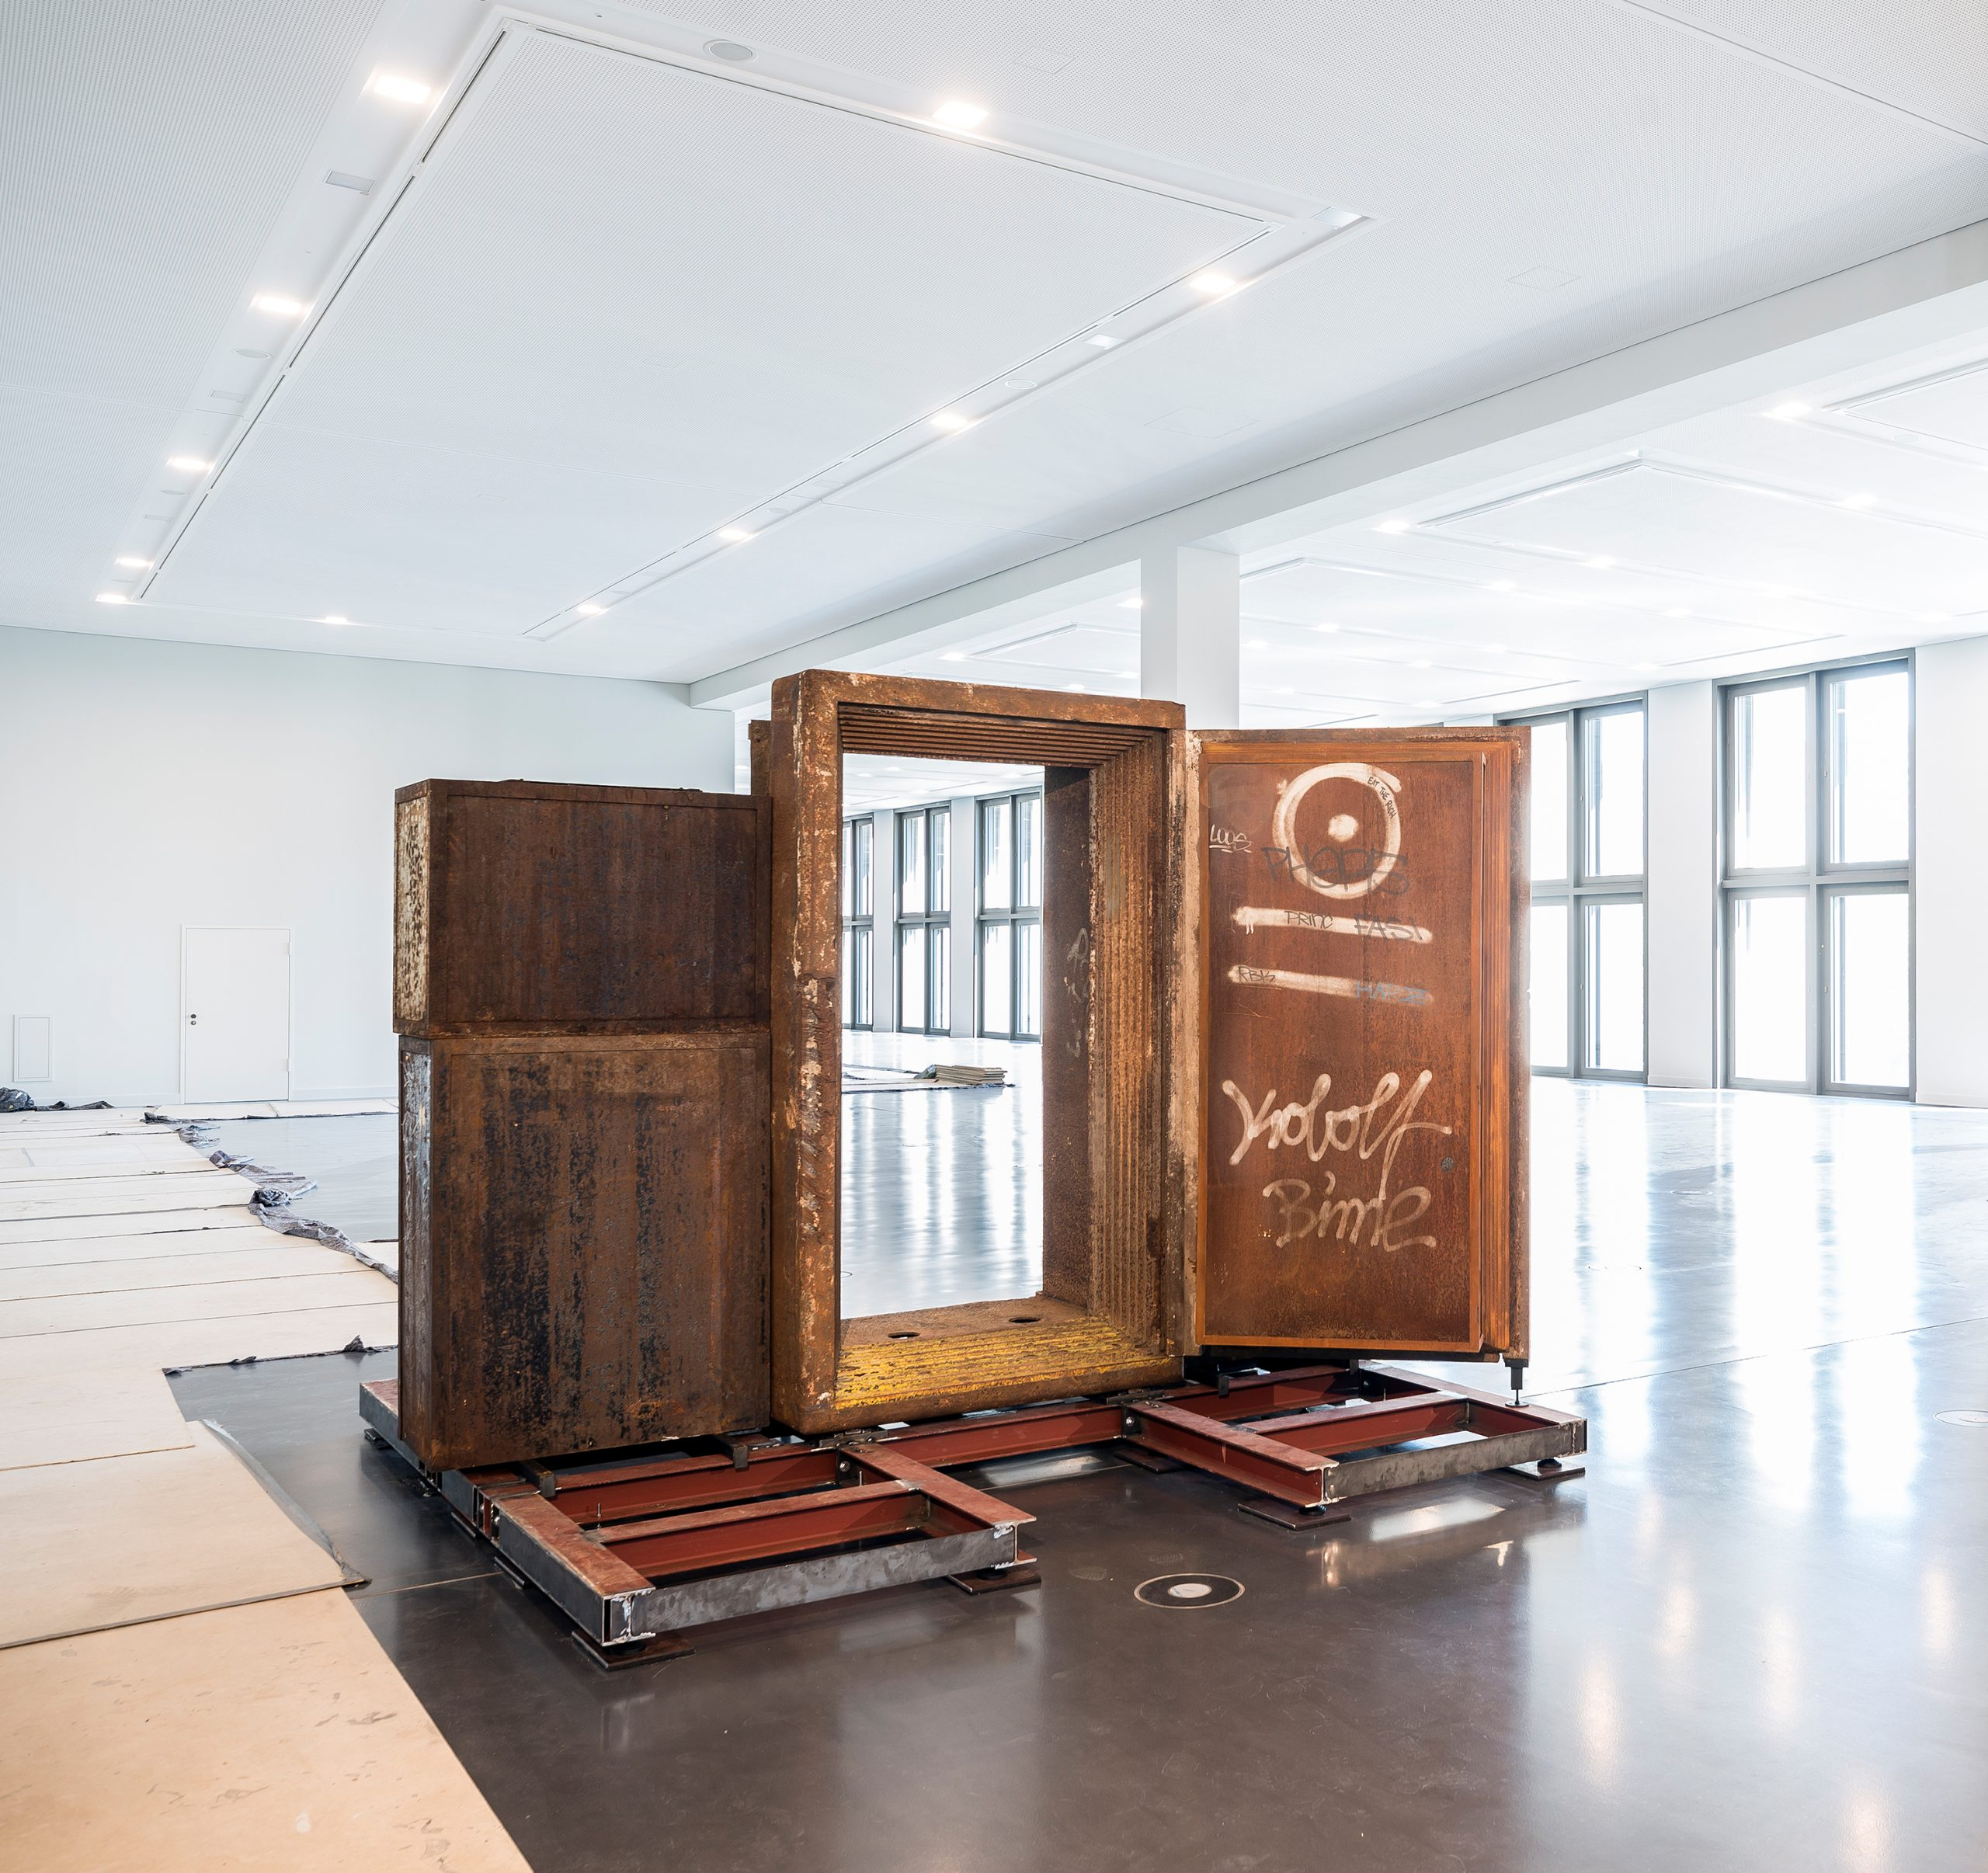 Installation of the Berlin Exhibition begins: the legendary 'TRESOR' club door moves into the Humboldt Forum